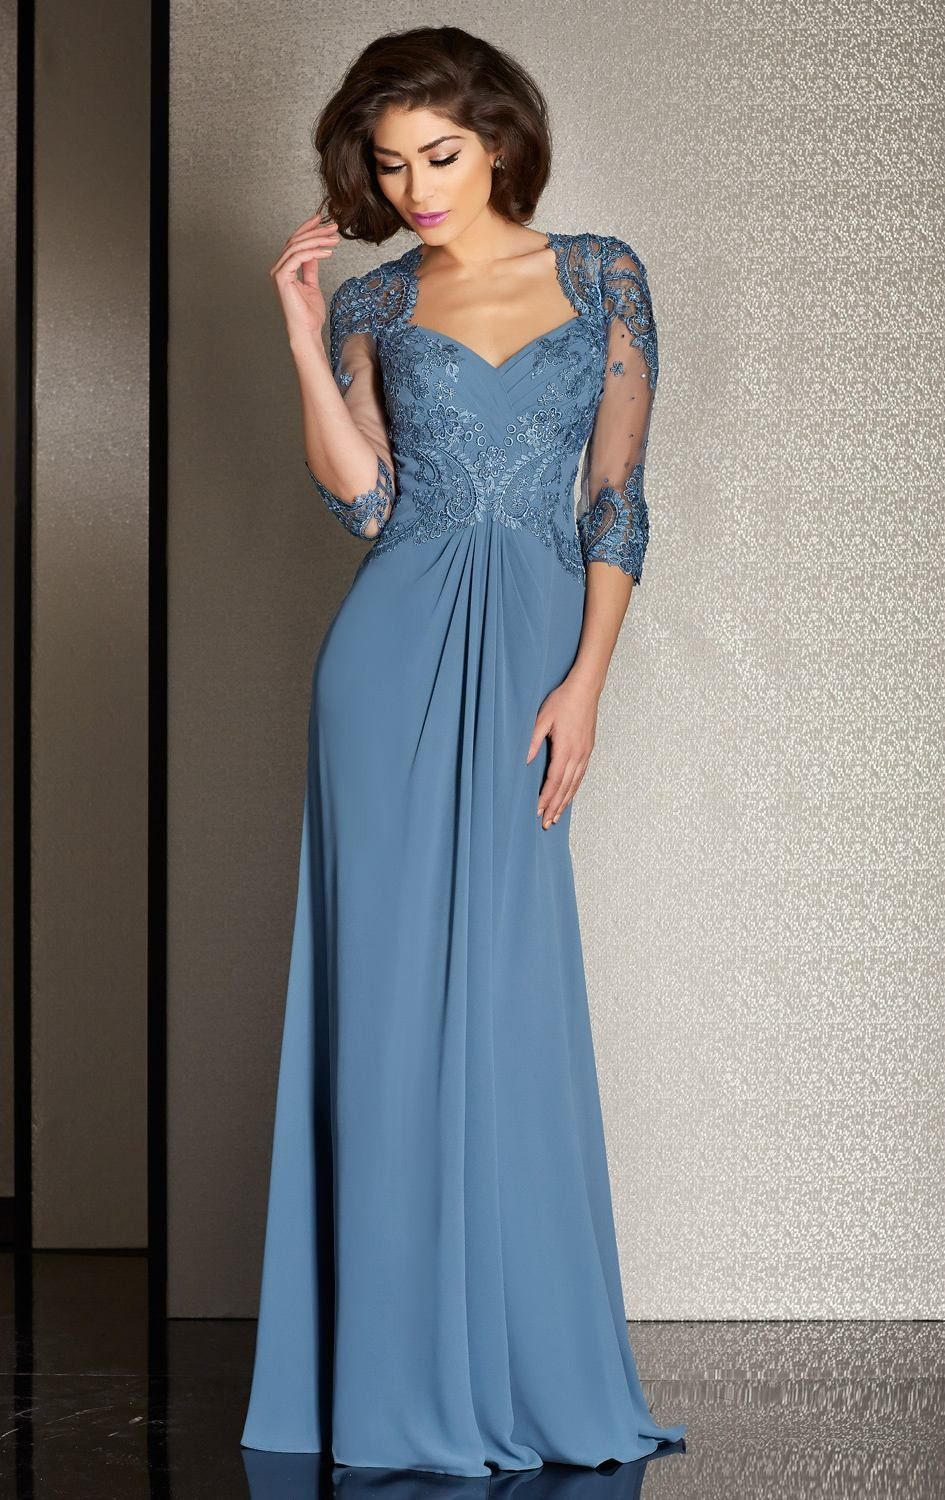 Elegant 3/4 Sleeves Chiffon Mother Of The Bride Dress | Bride ...